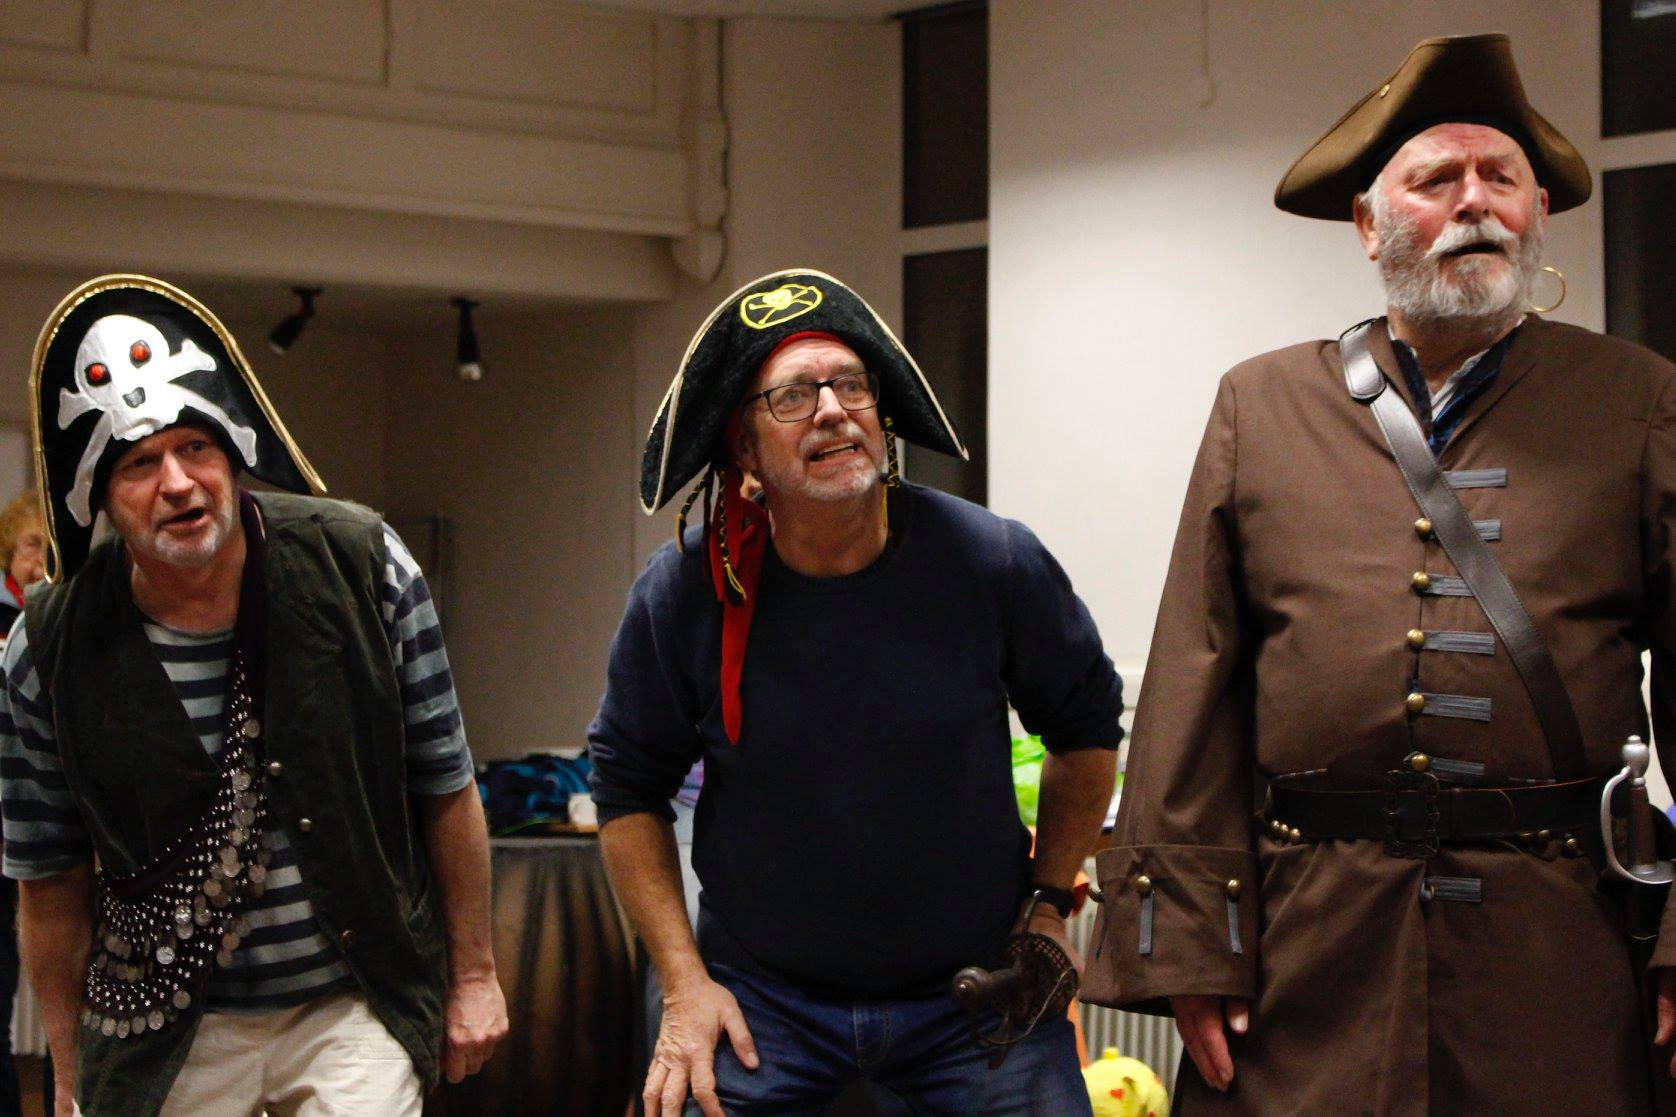 Actors dressed as pirates